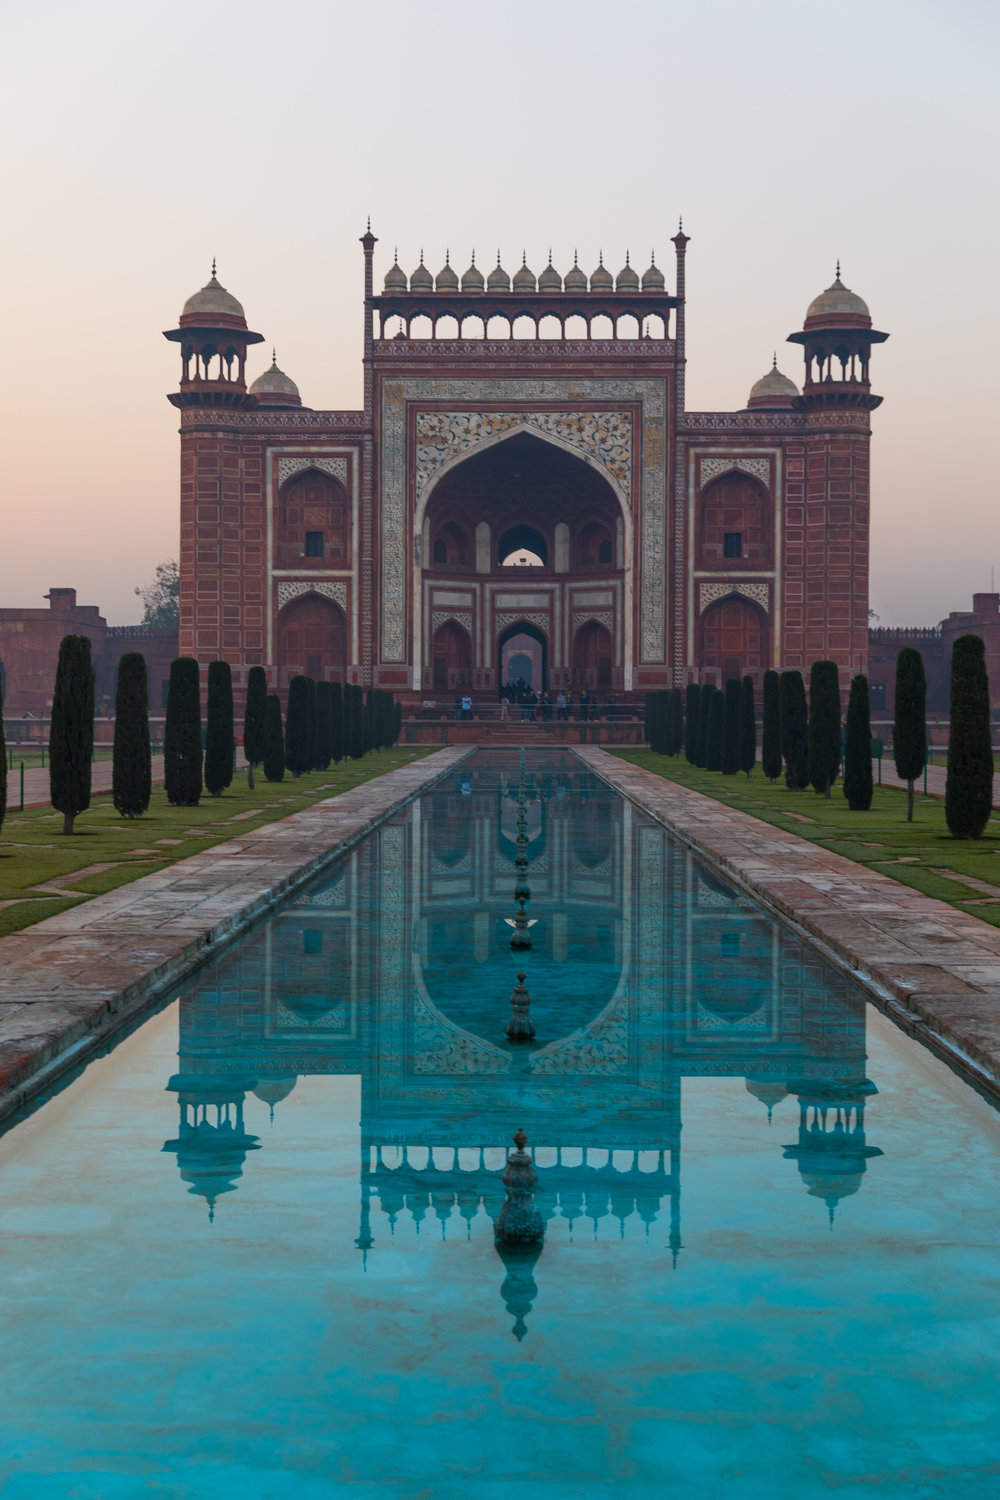 Royal Gate, Taj Mahal, Agra